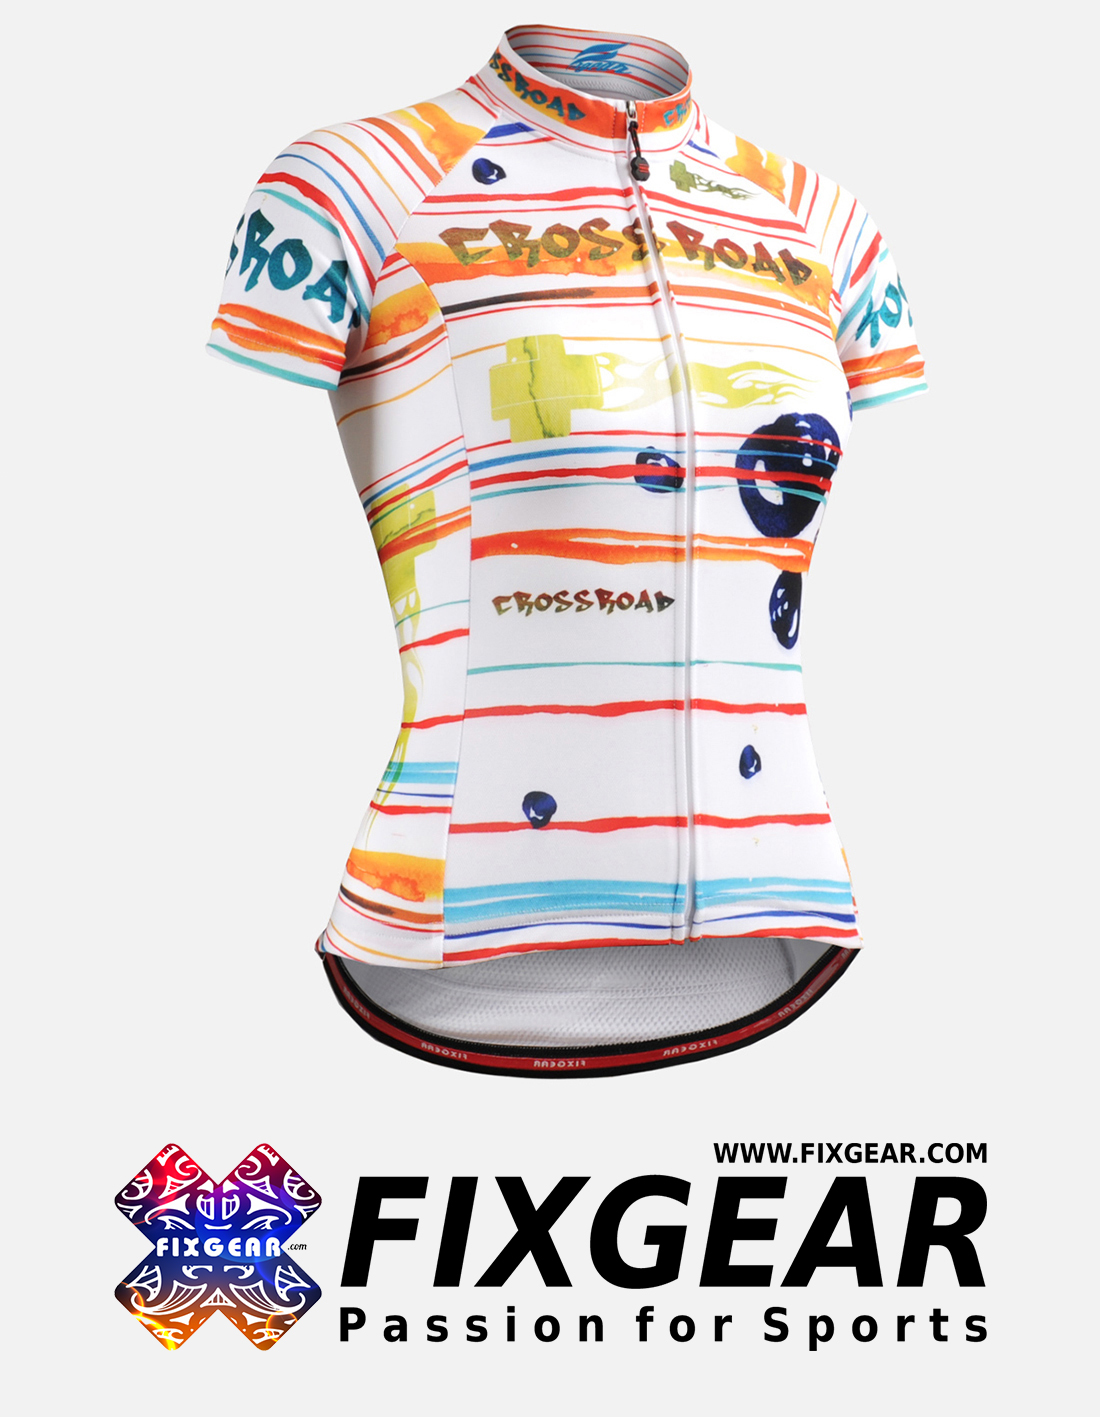 FIXGEAR CS-W2002 Women's Short Sleeve Jersey